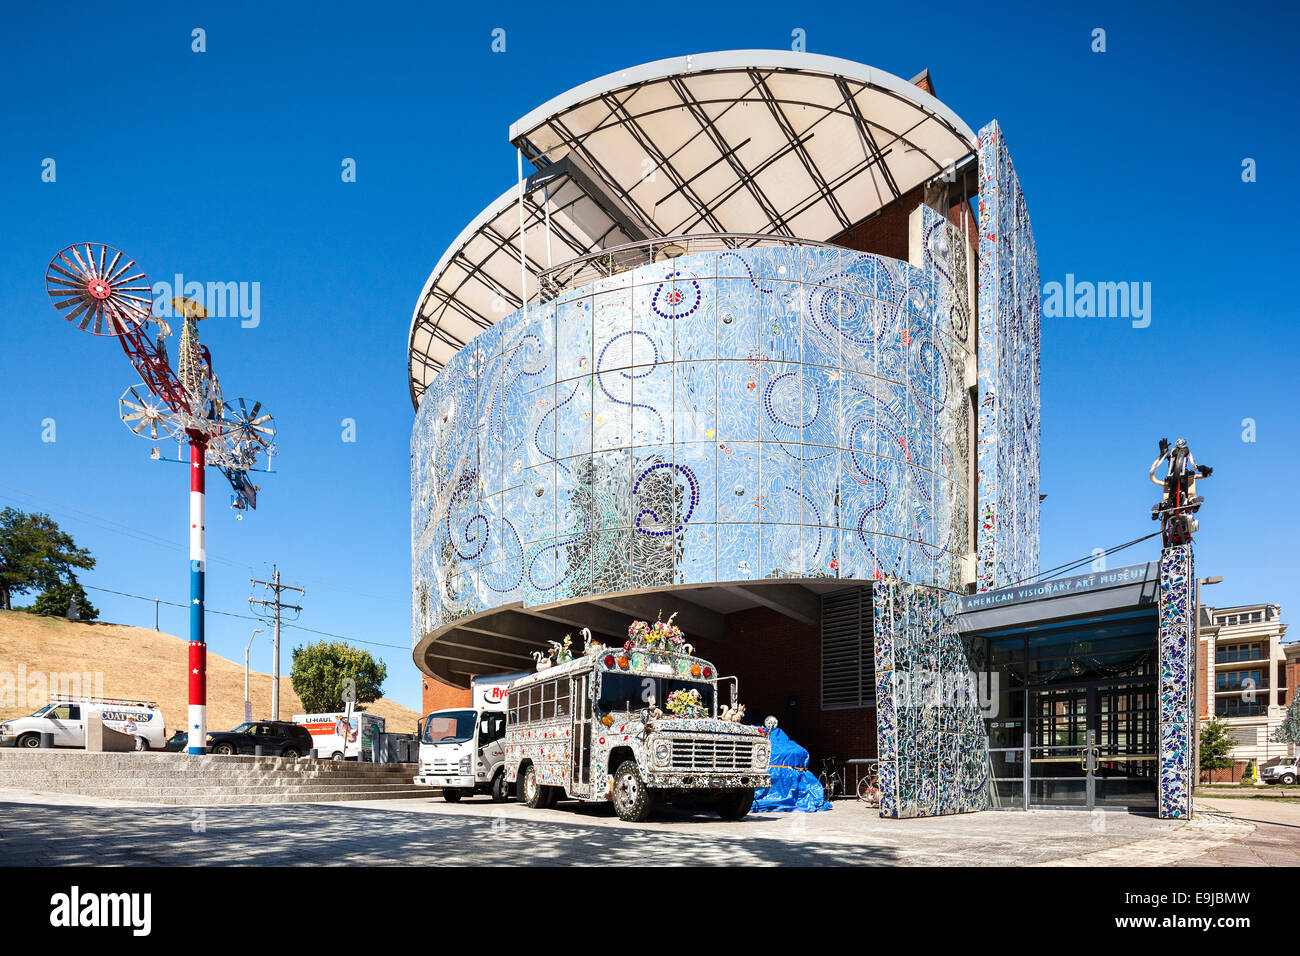 American Visionary Art Museum, Baltimore Maryland. National Museum for outsider art, or art brut, by self-taught - Stock Image